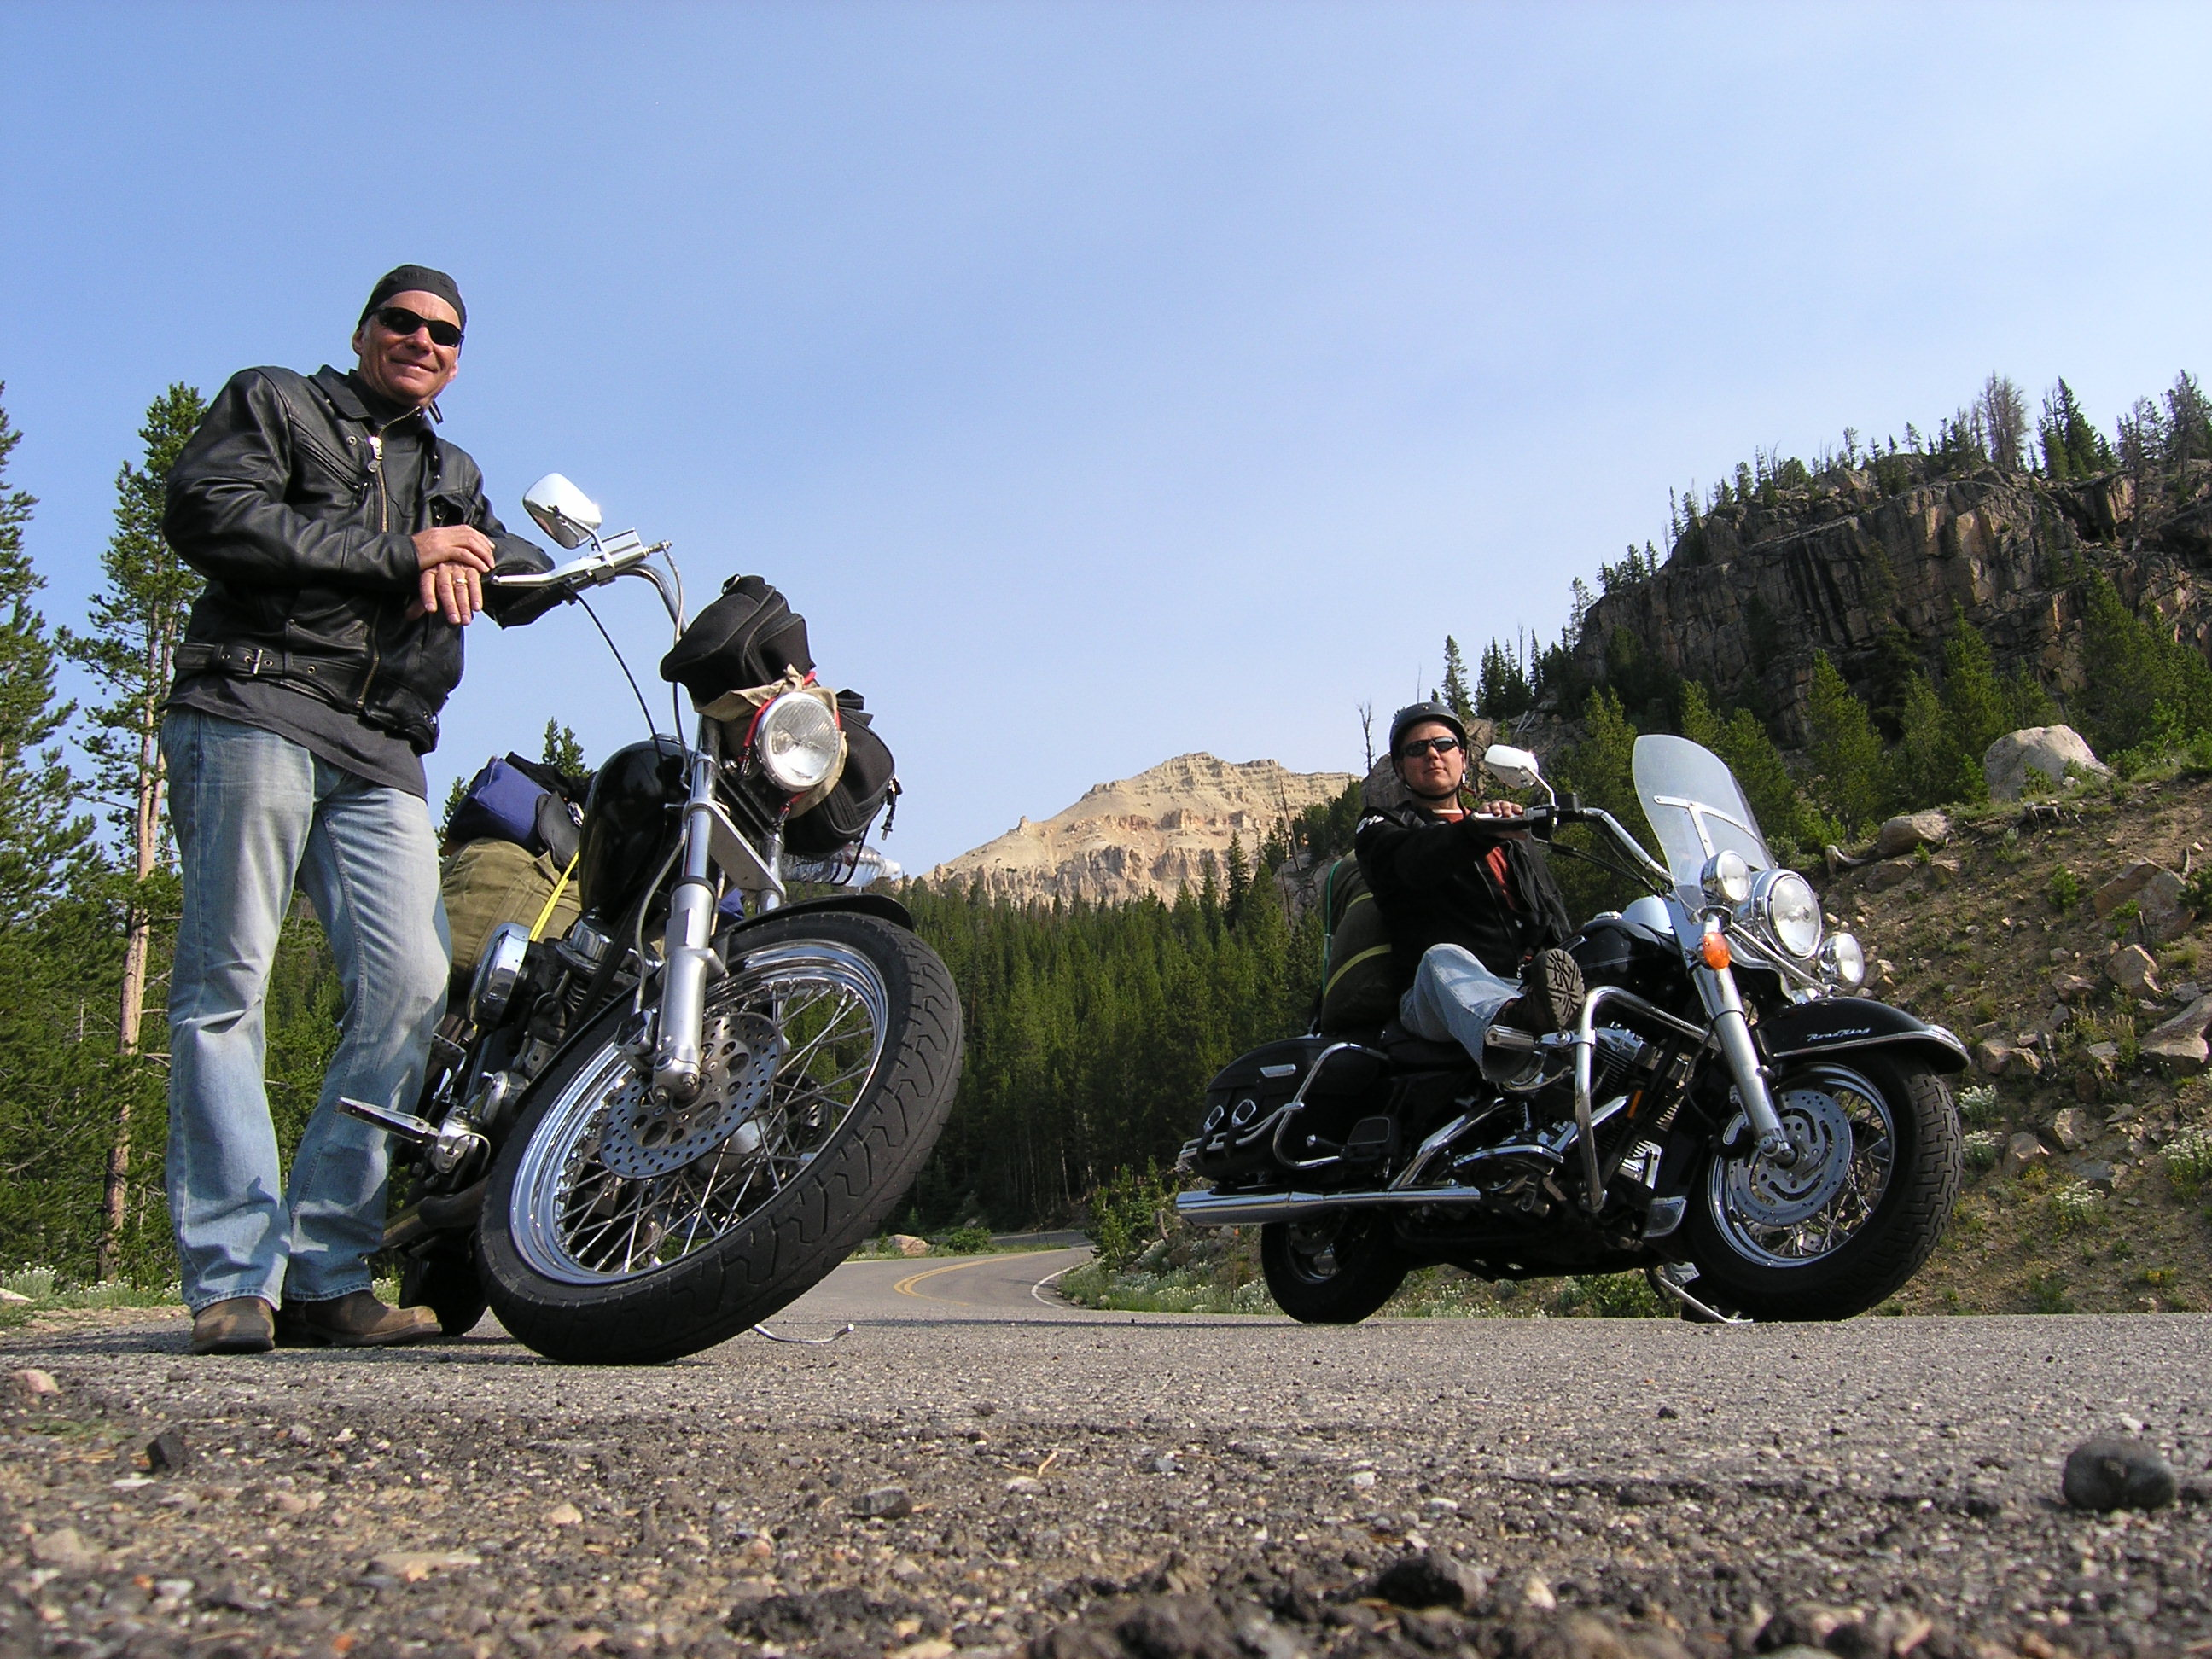 Montana to New Mexico Motorcycle Trip